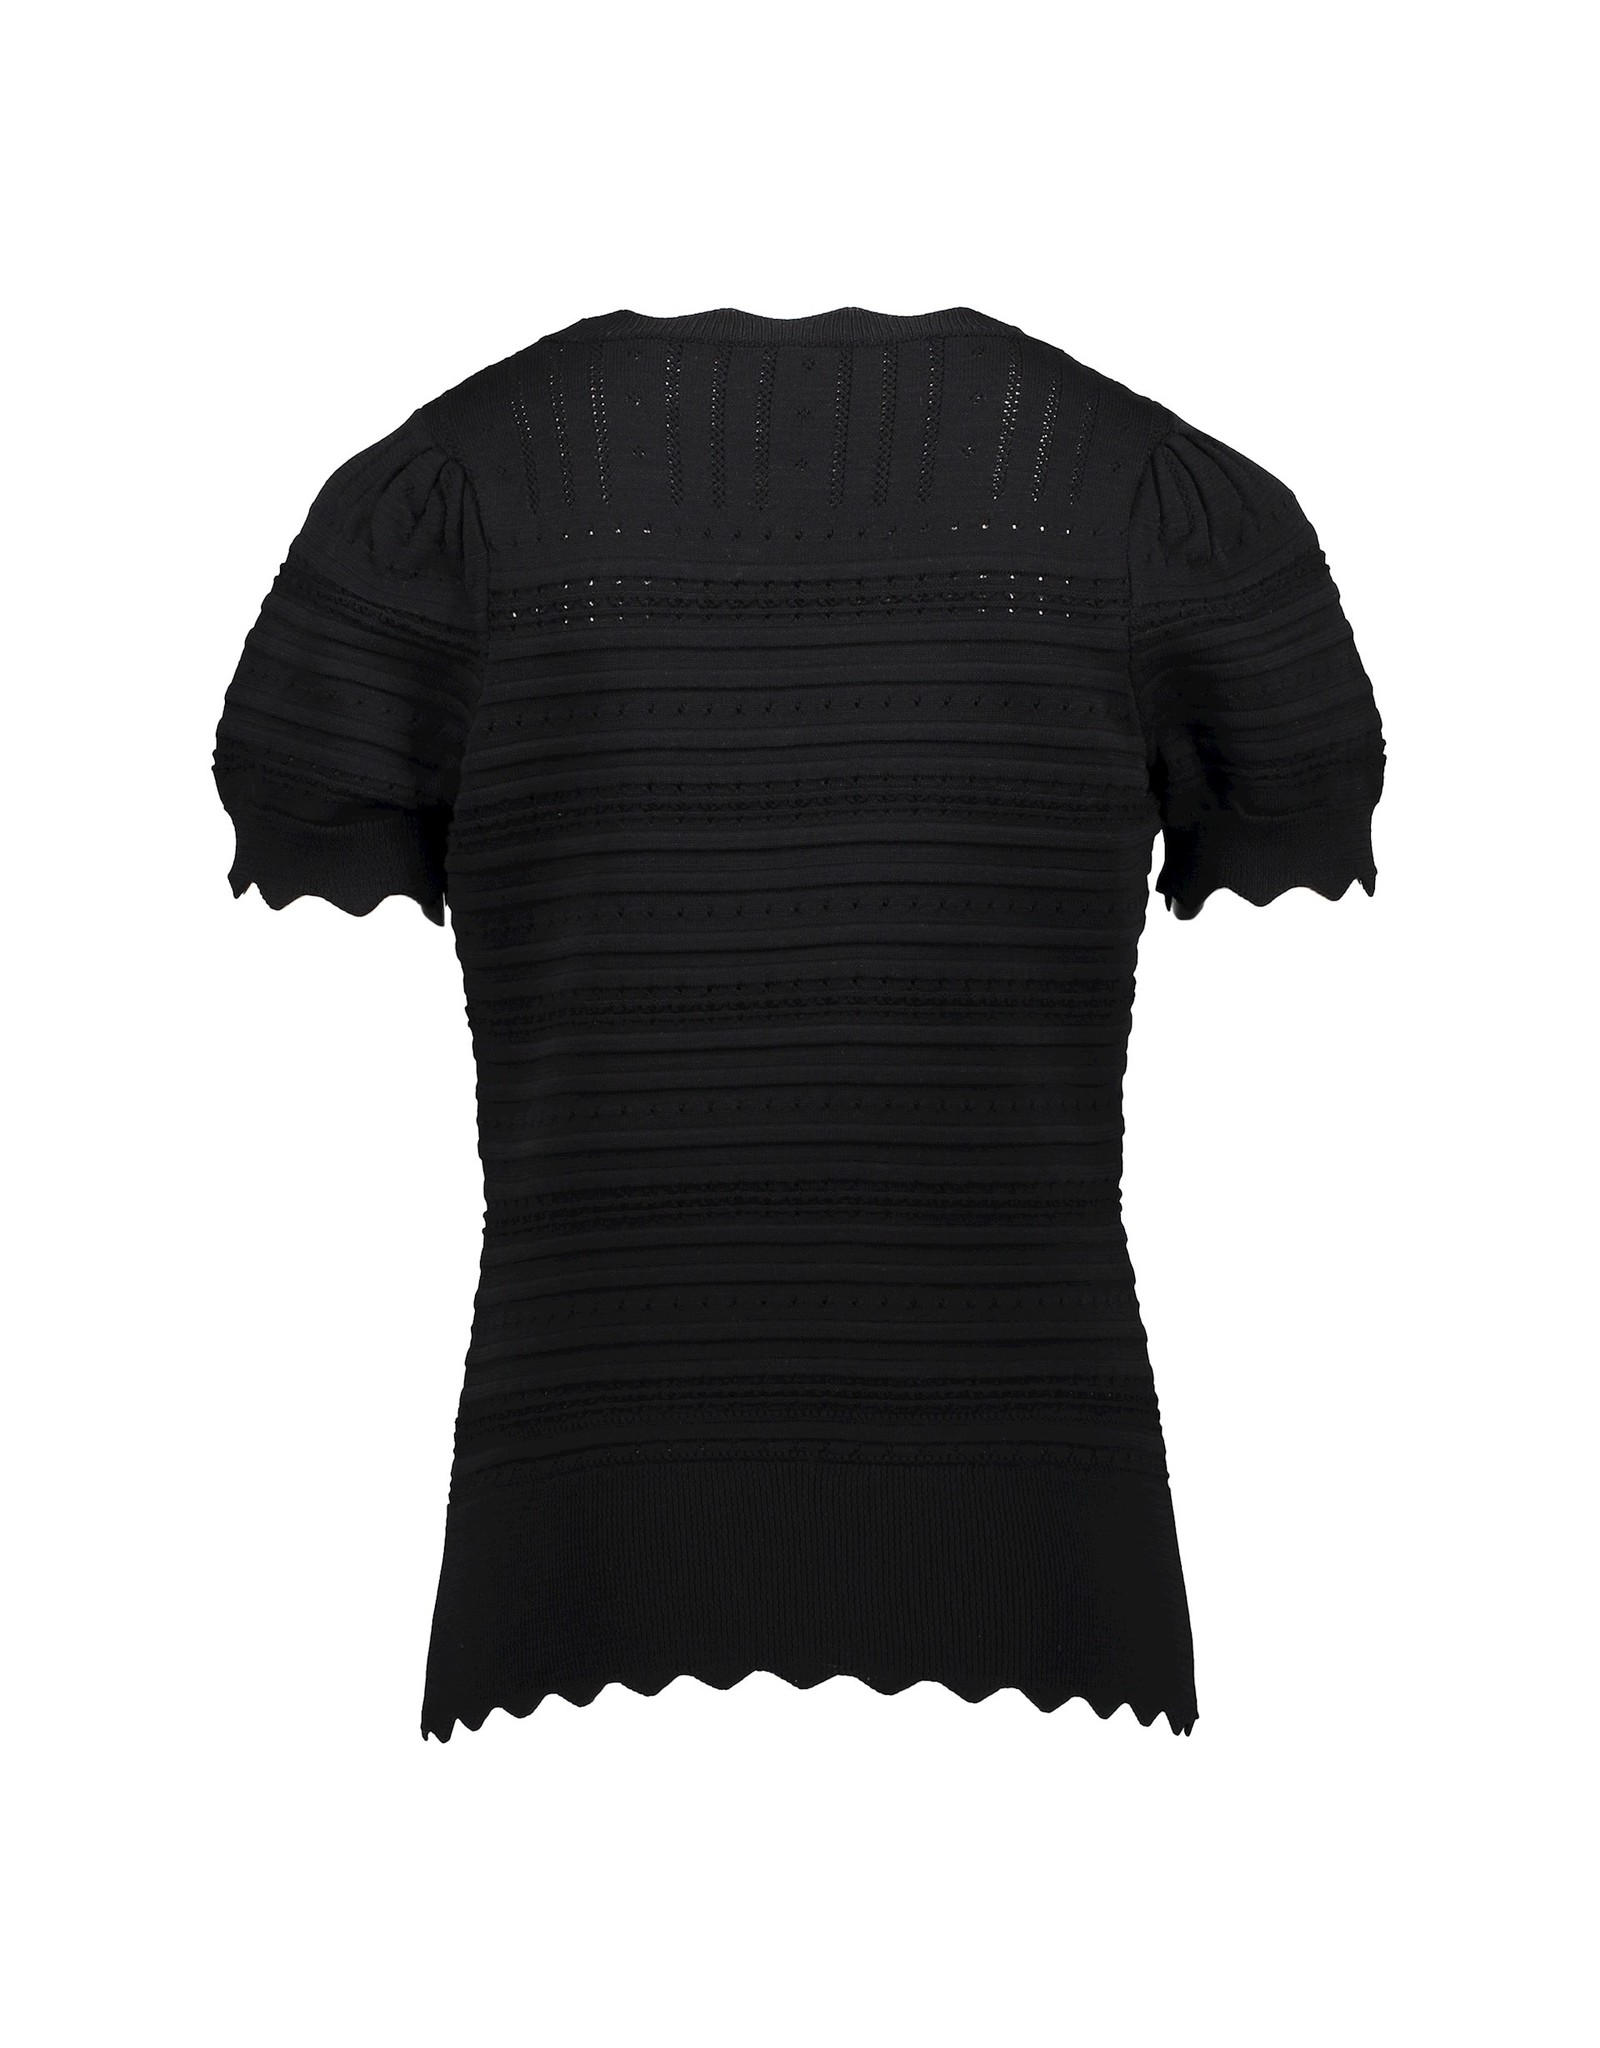 Geisha Top ajour s/s black